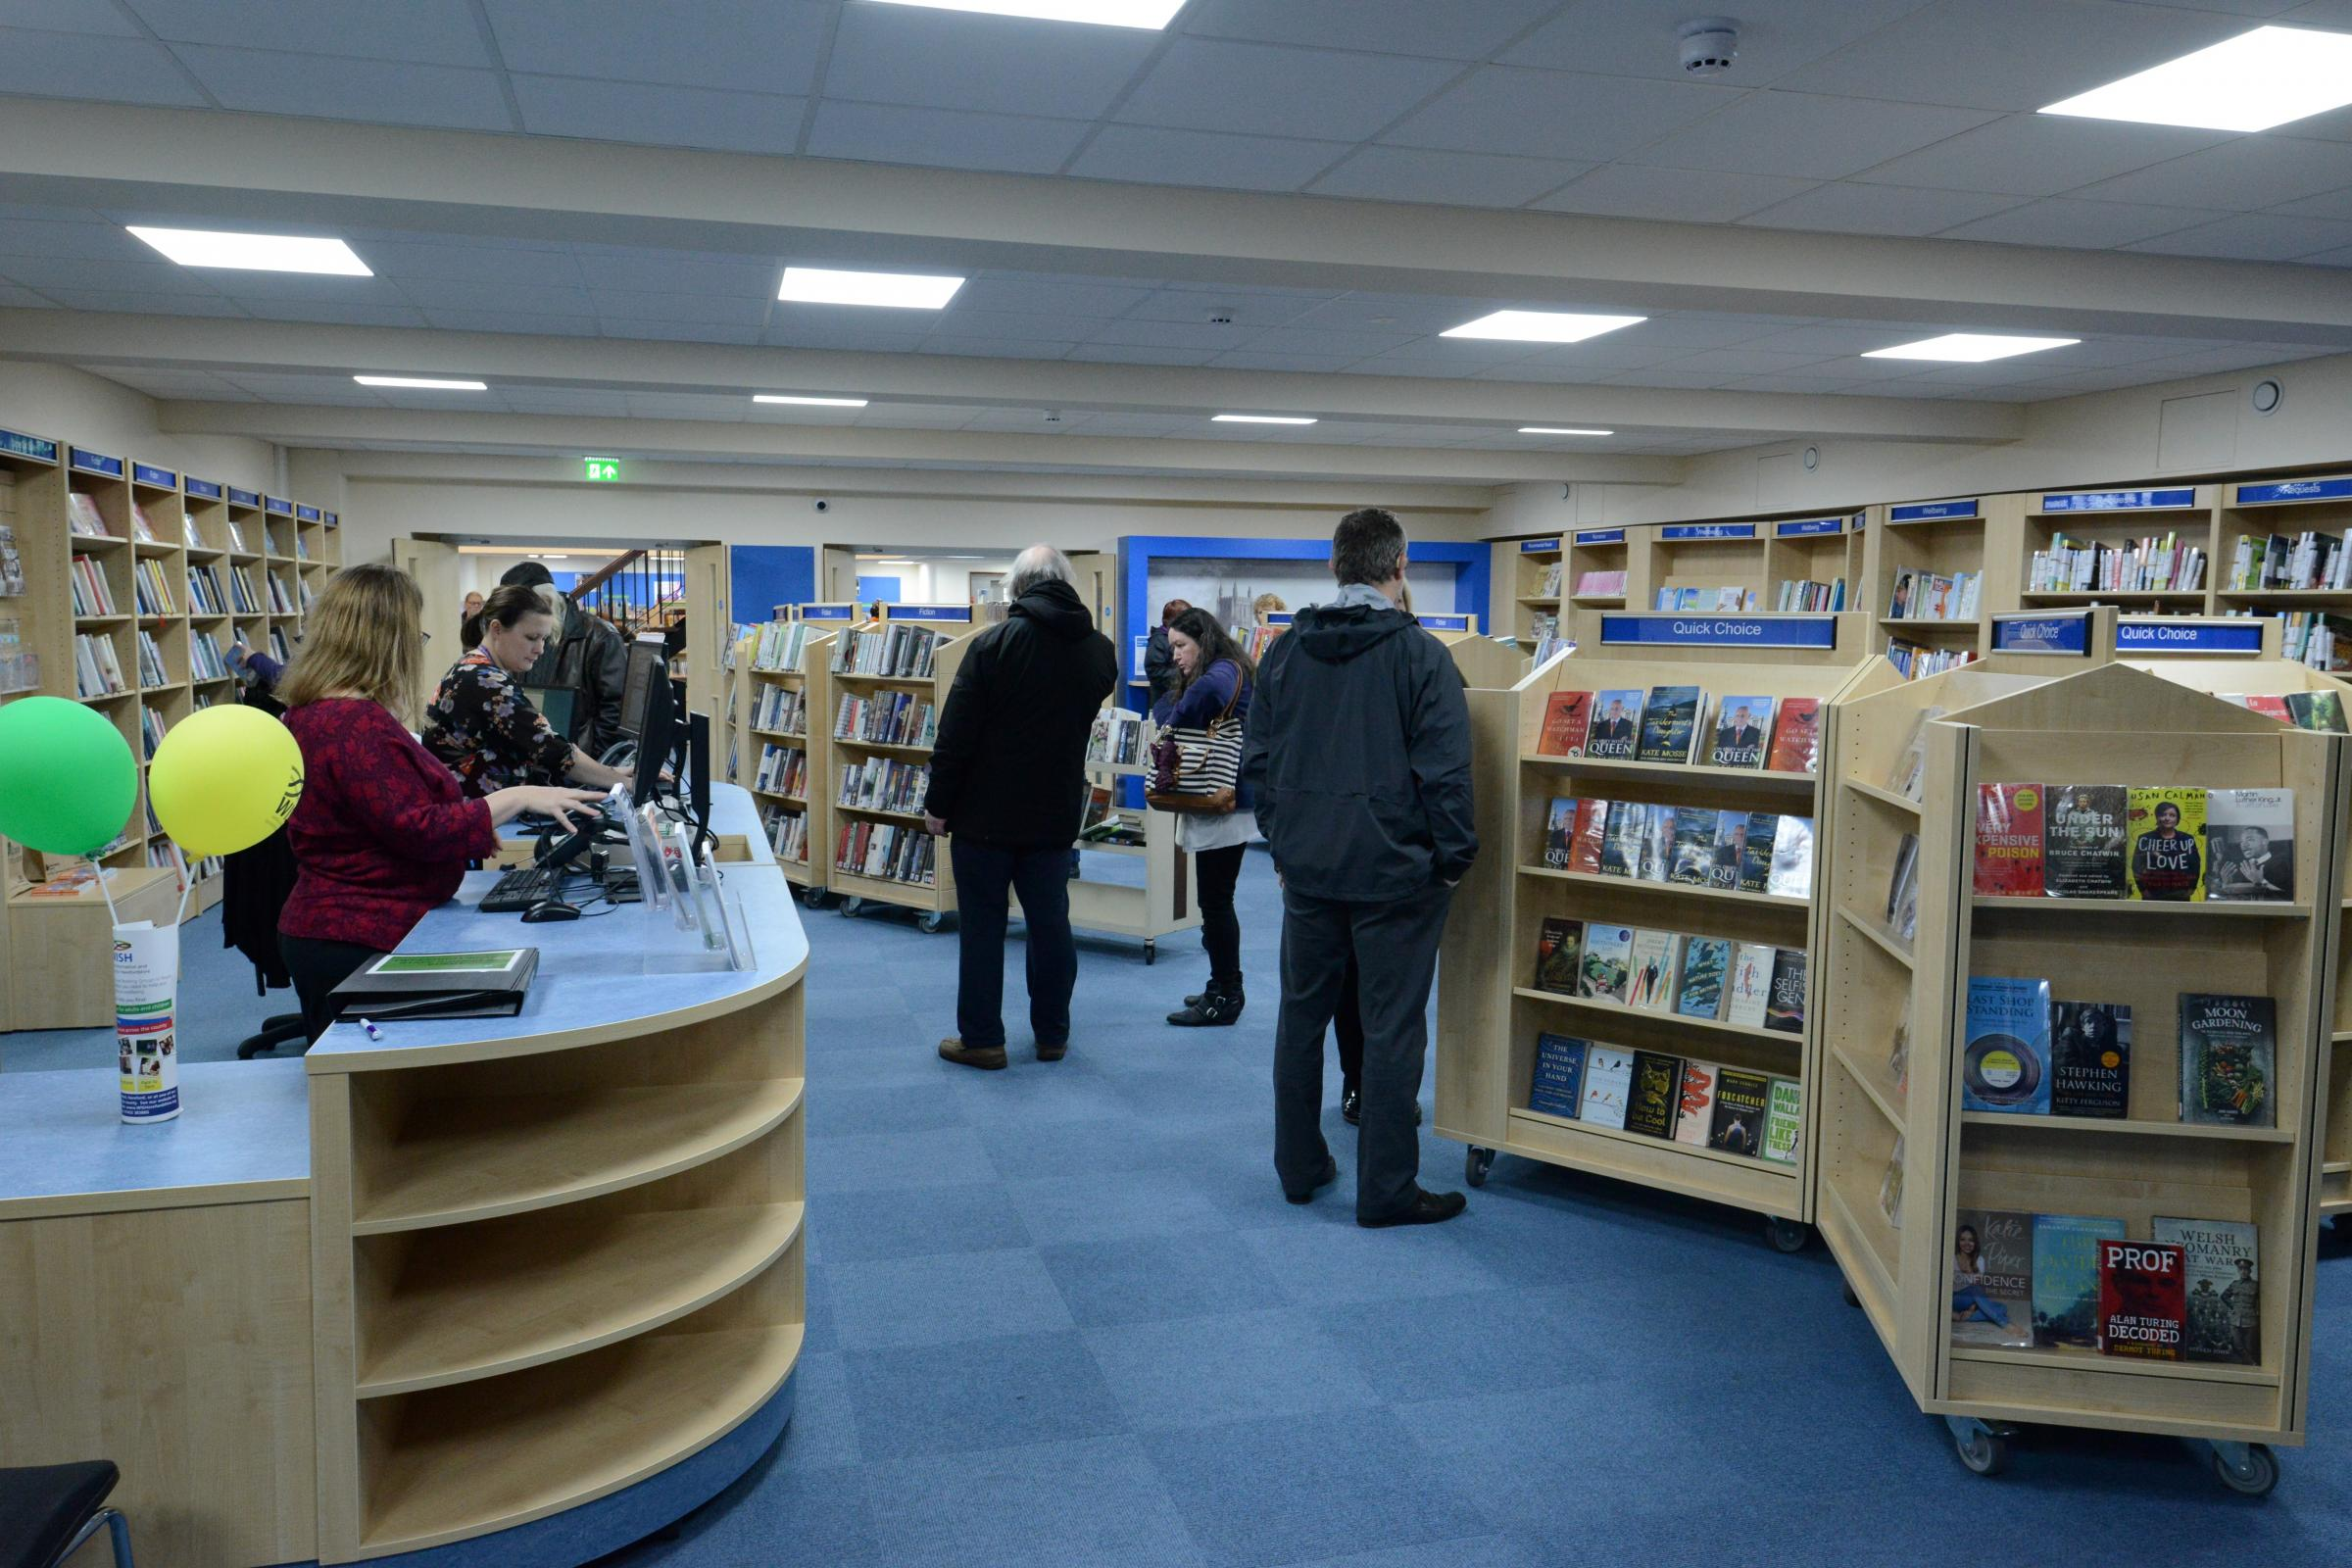 Hereford Library will host drop-in sessions